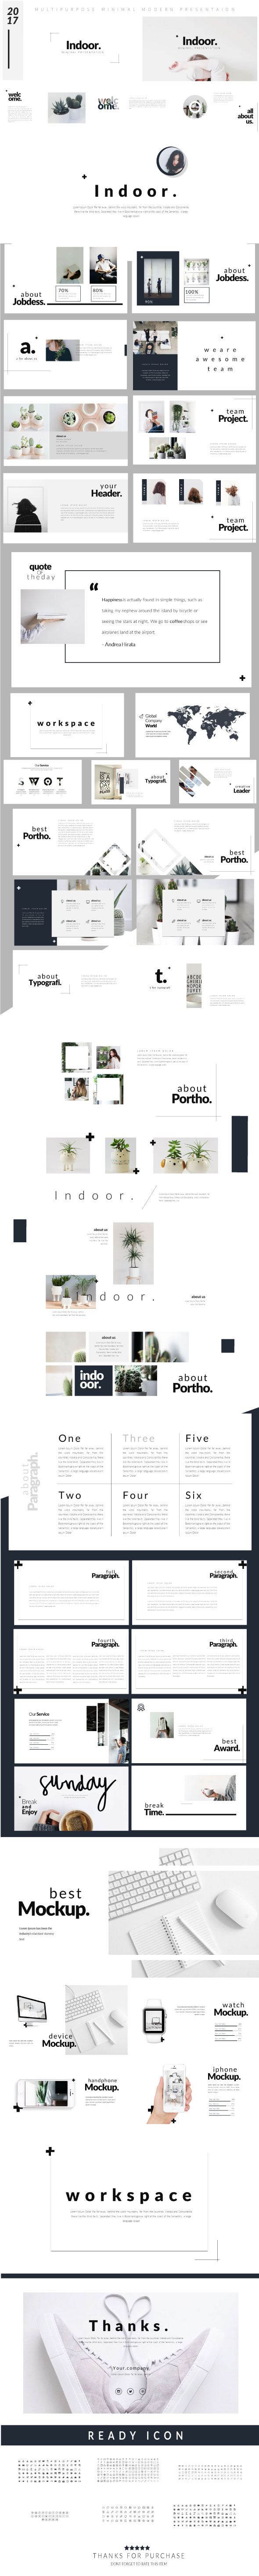 GraphicRiver Indoor Modern Minimal Presentation Template 20818316